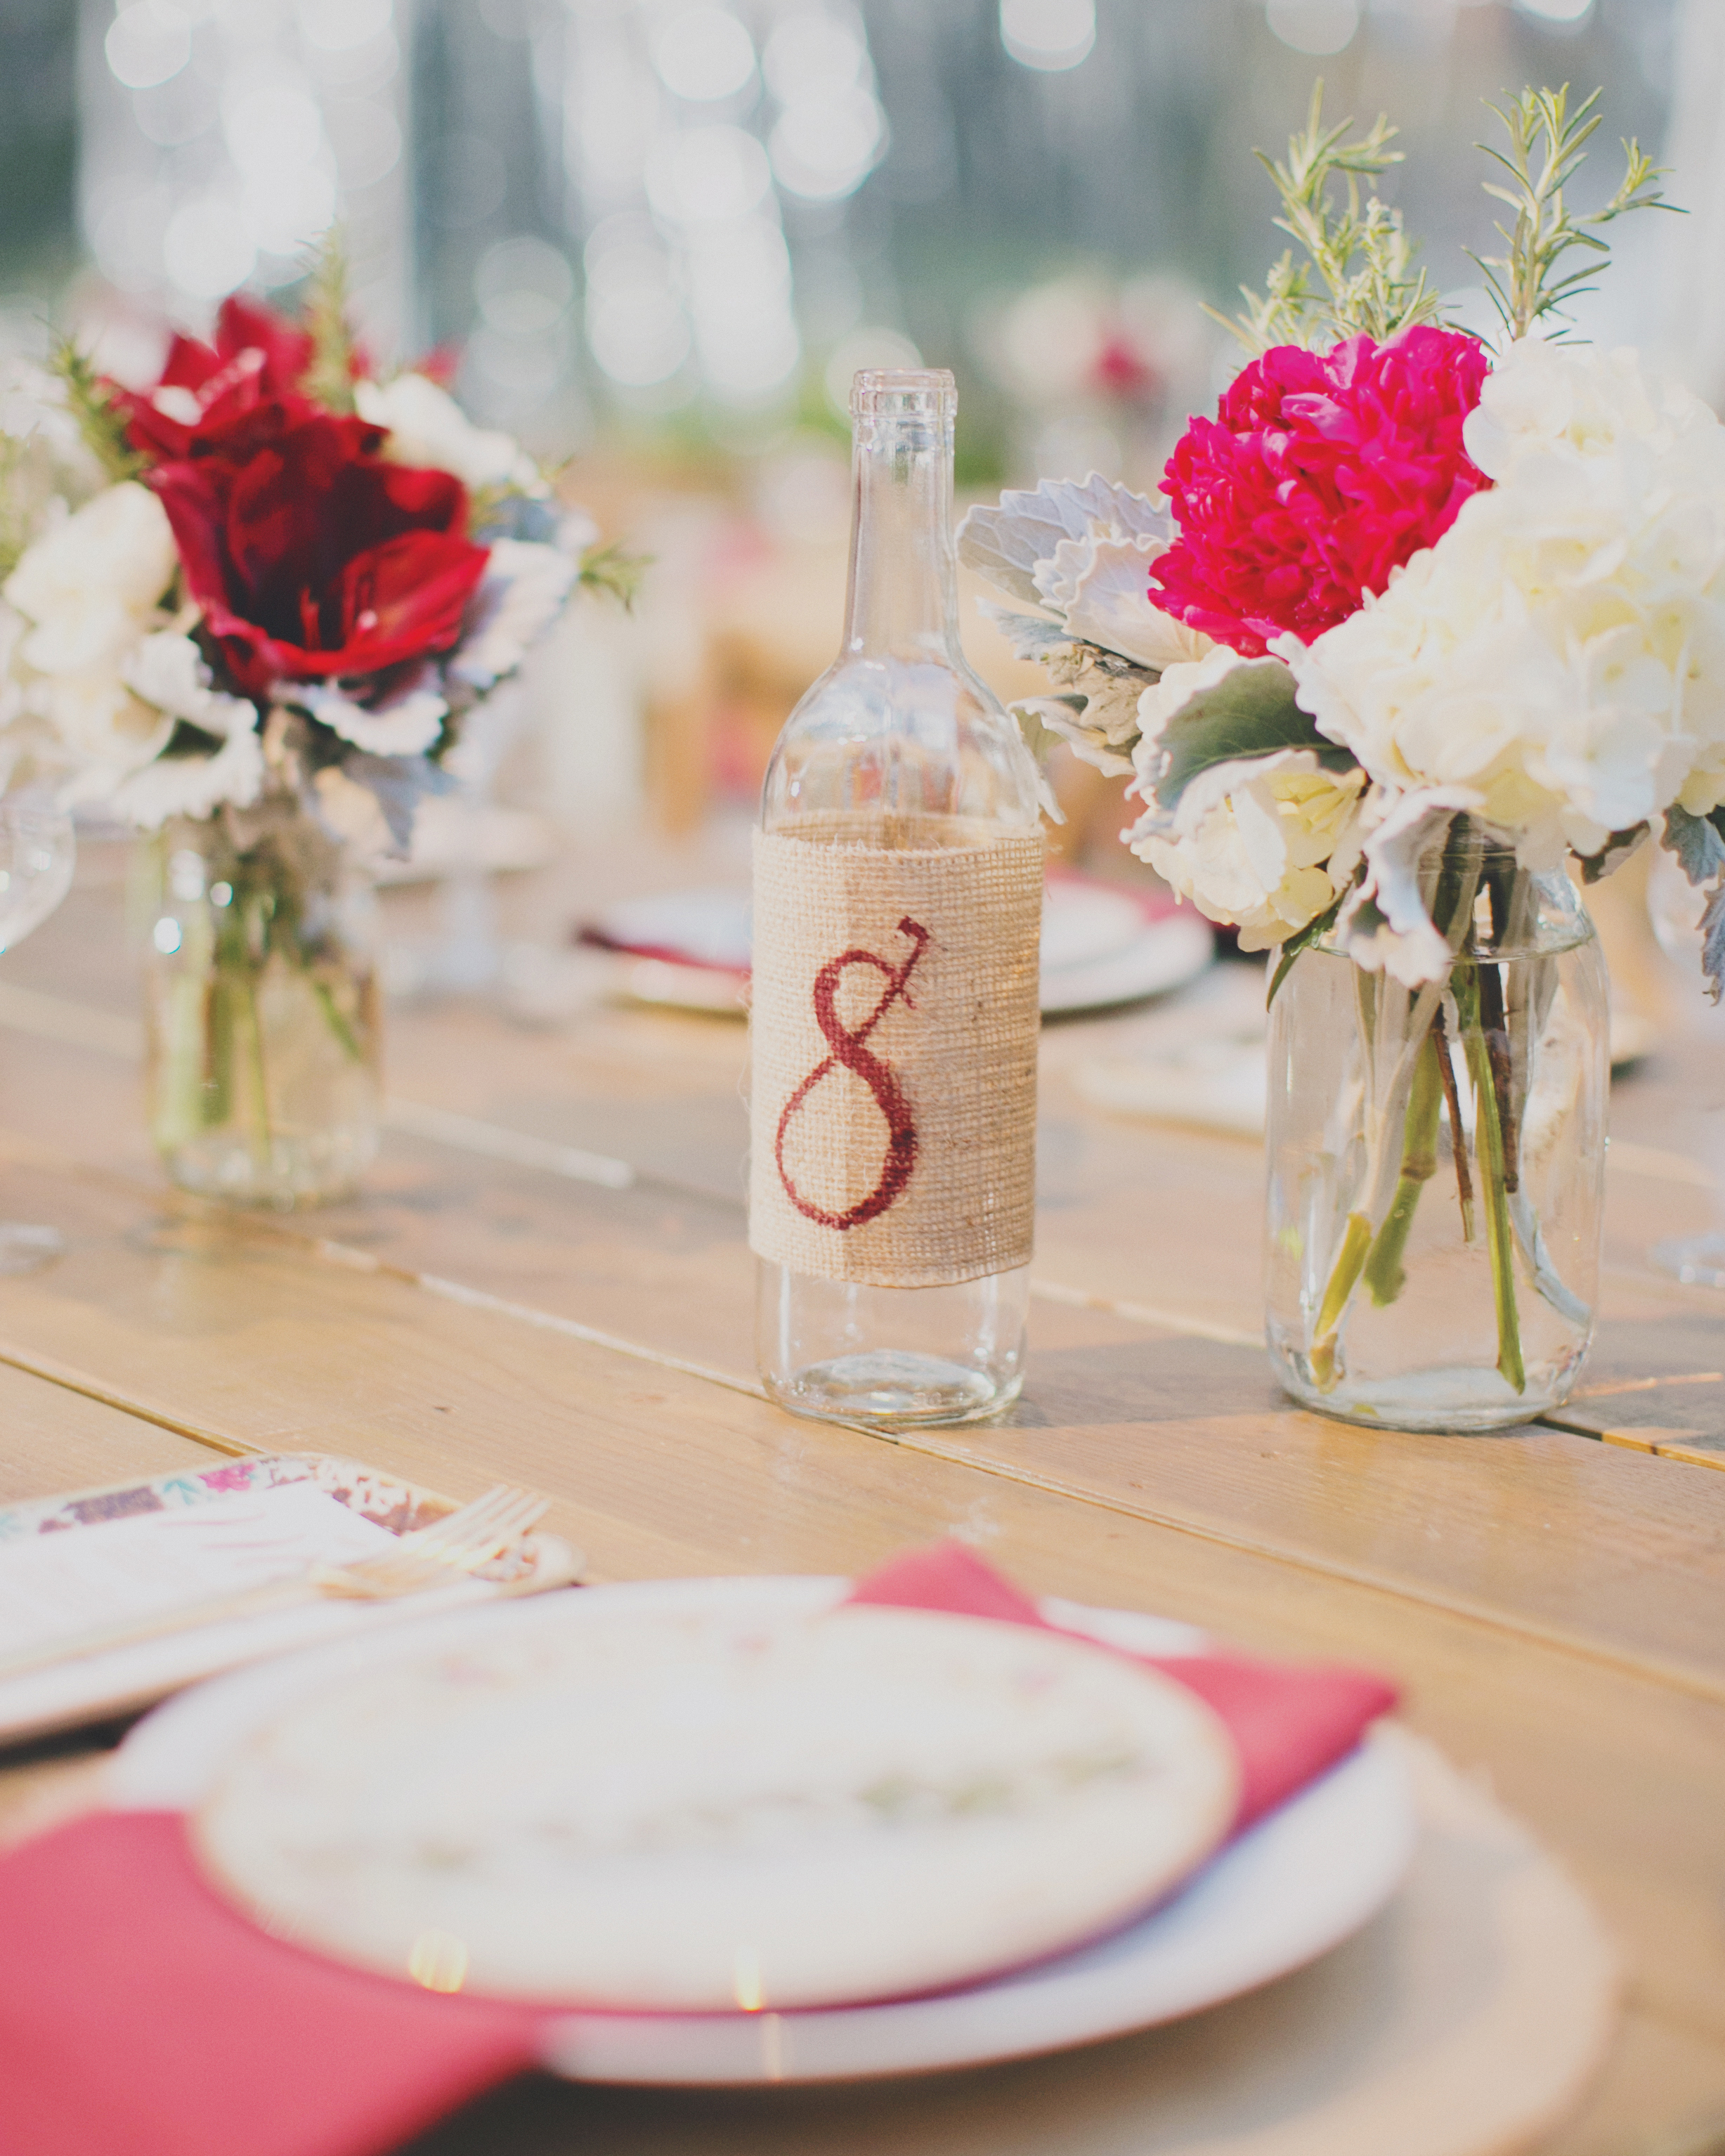 cacee-donald-table-number-mwds110101.jpg